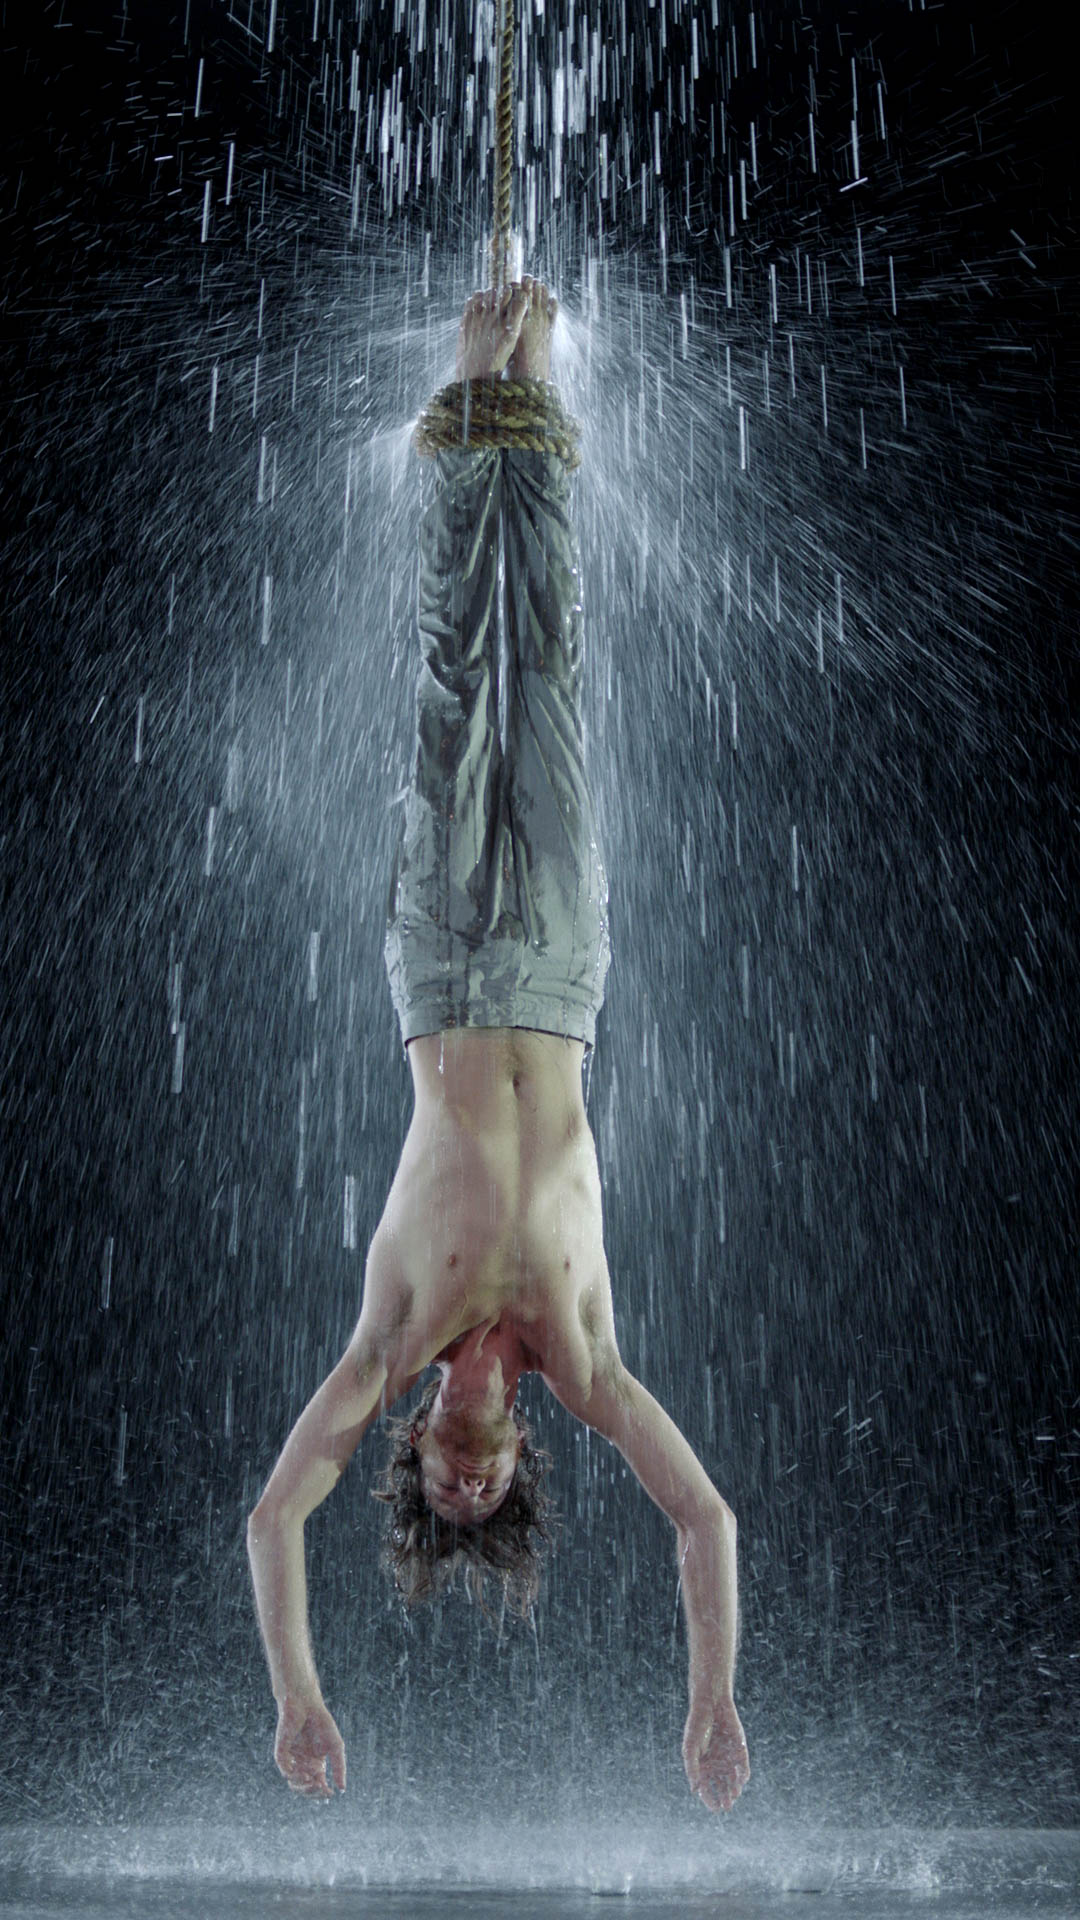 Image Above: ©Bill Viola. Water Martyr, 2014. Color High-Definition video on flat panel display, 42 3/8 x 24 1/2 x 2 5/8 in. (107.6 x 62.1 x 6.8 cm), 7:10 minutes, Executive producer: Kira Perov, Performer: John Hay